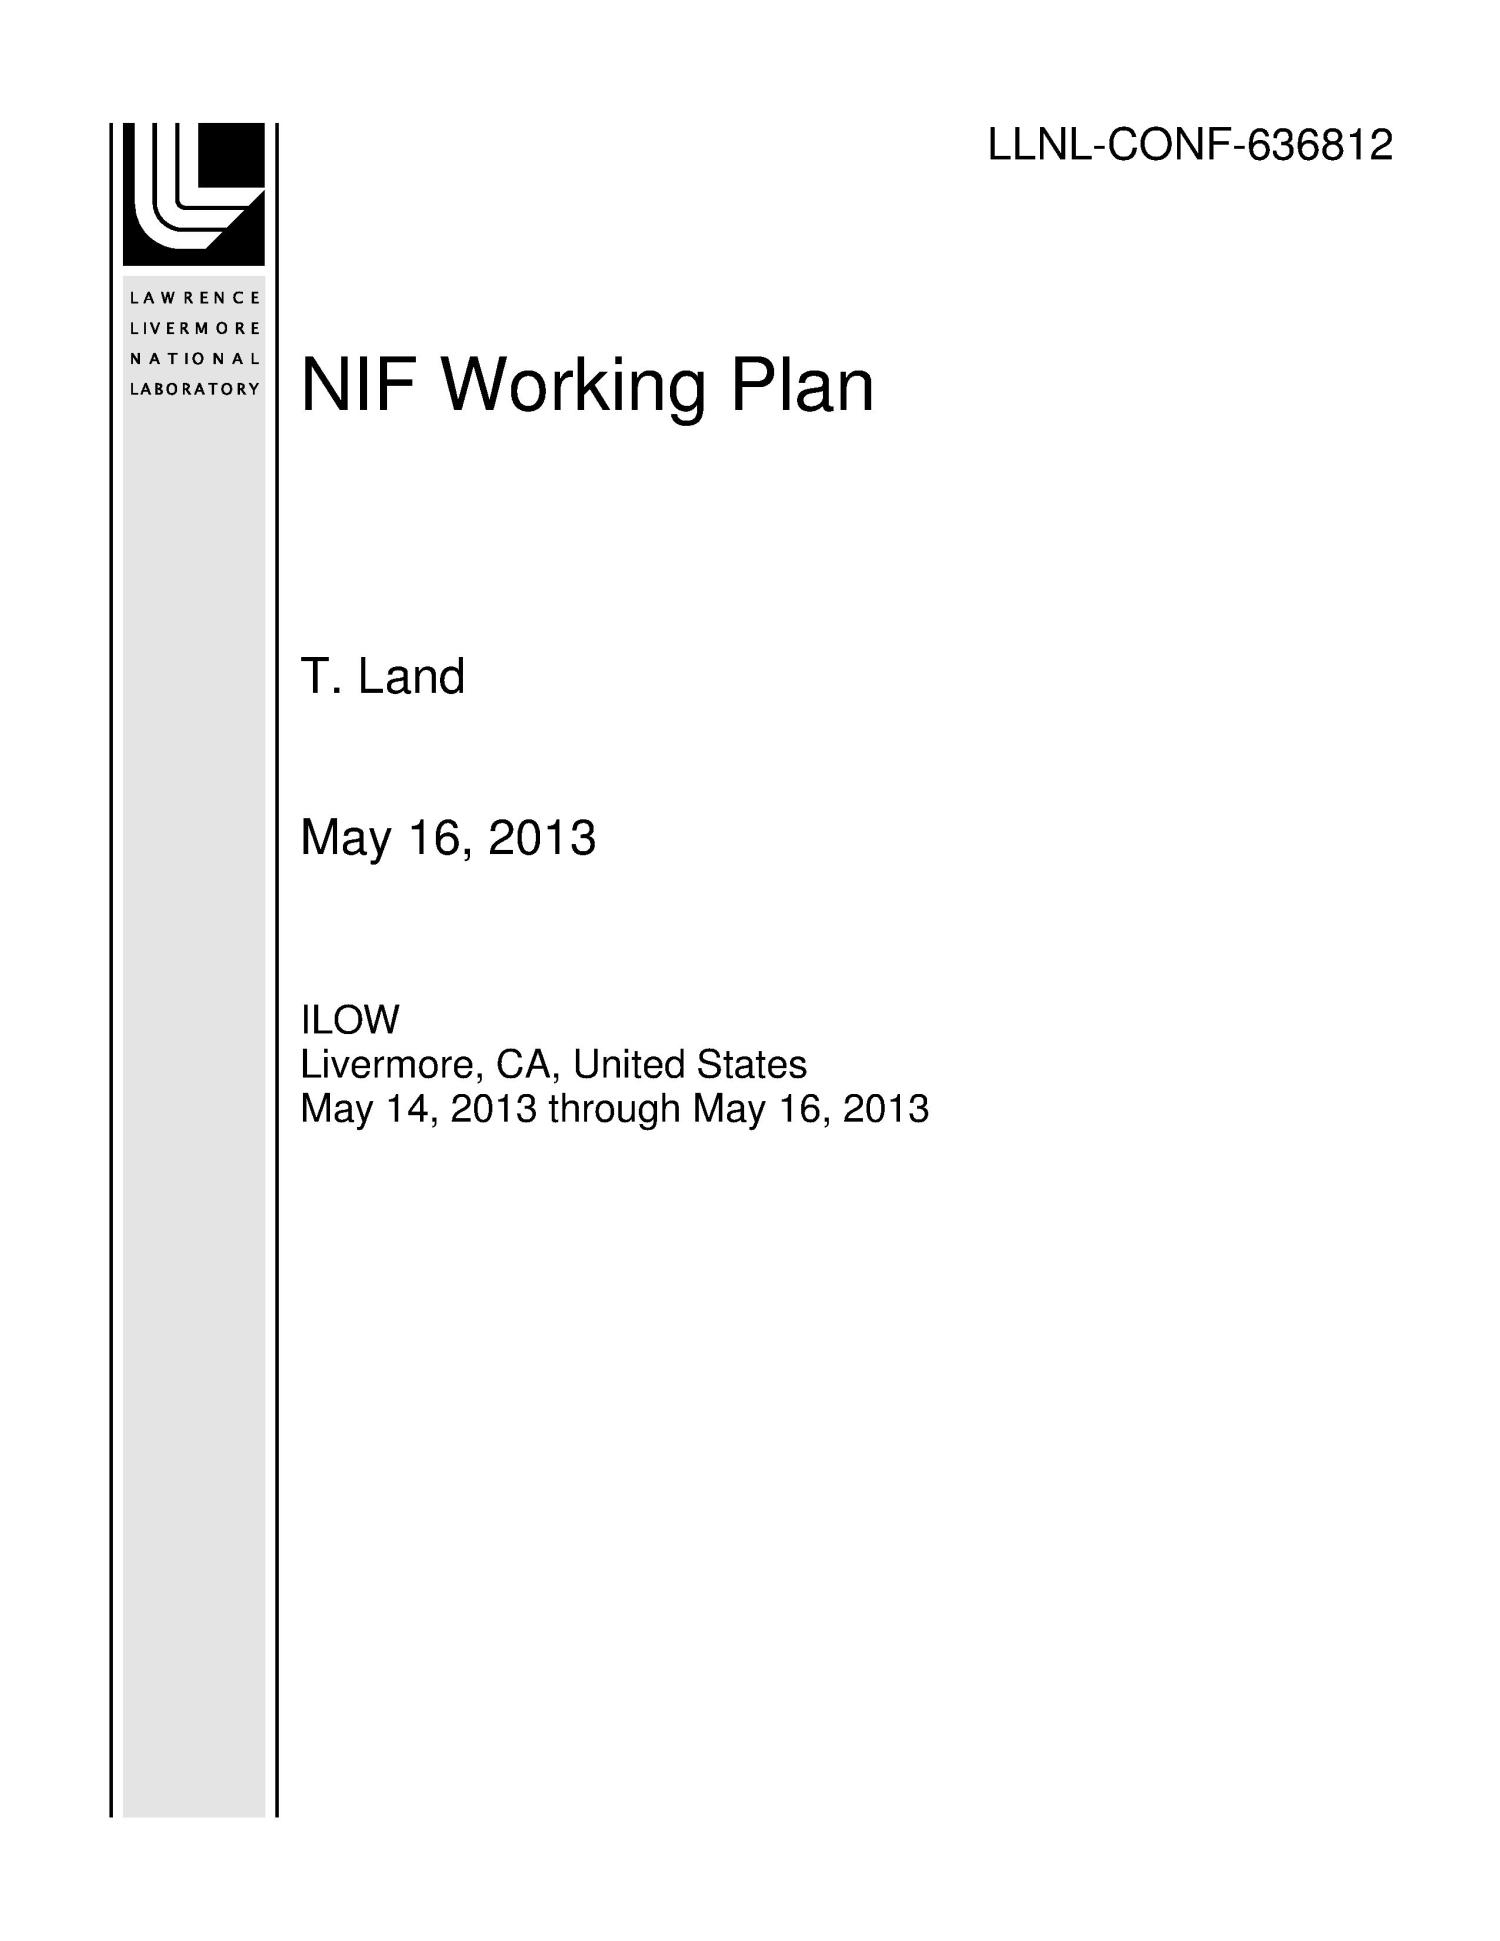 NIF Working Plan                                                                                                      [Sequence #]: 1 of 28